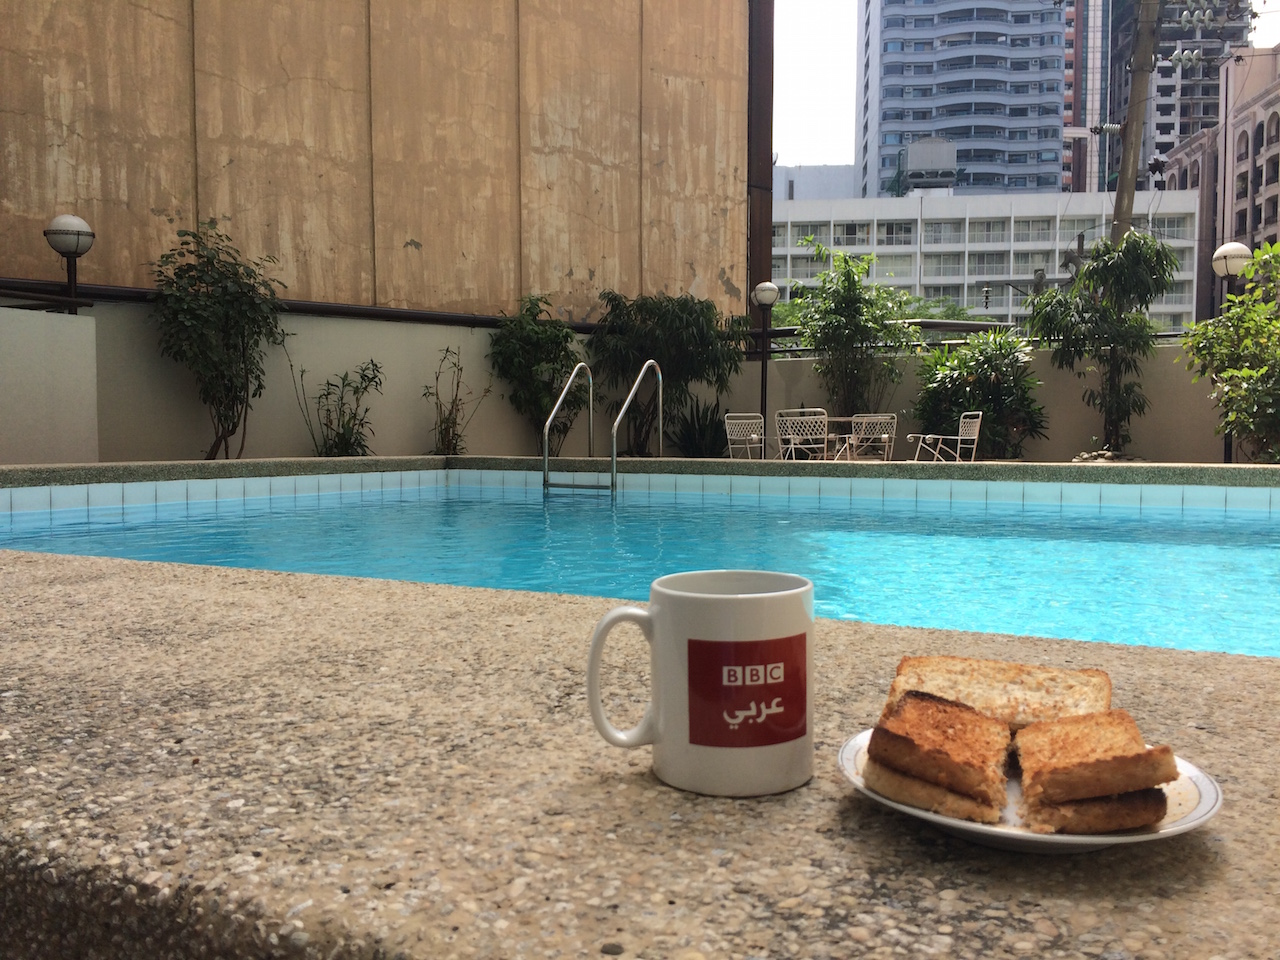 photograph of cup of coffee and plate of toast by a swimming pool